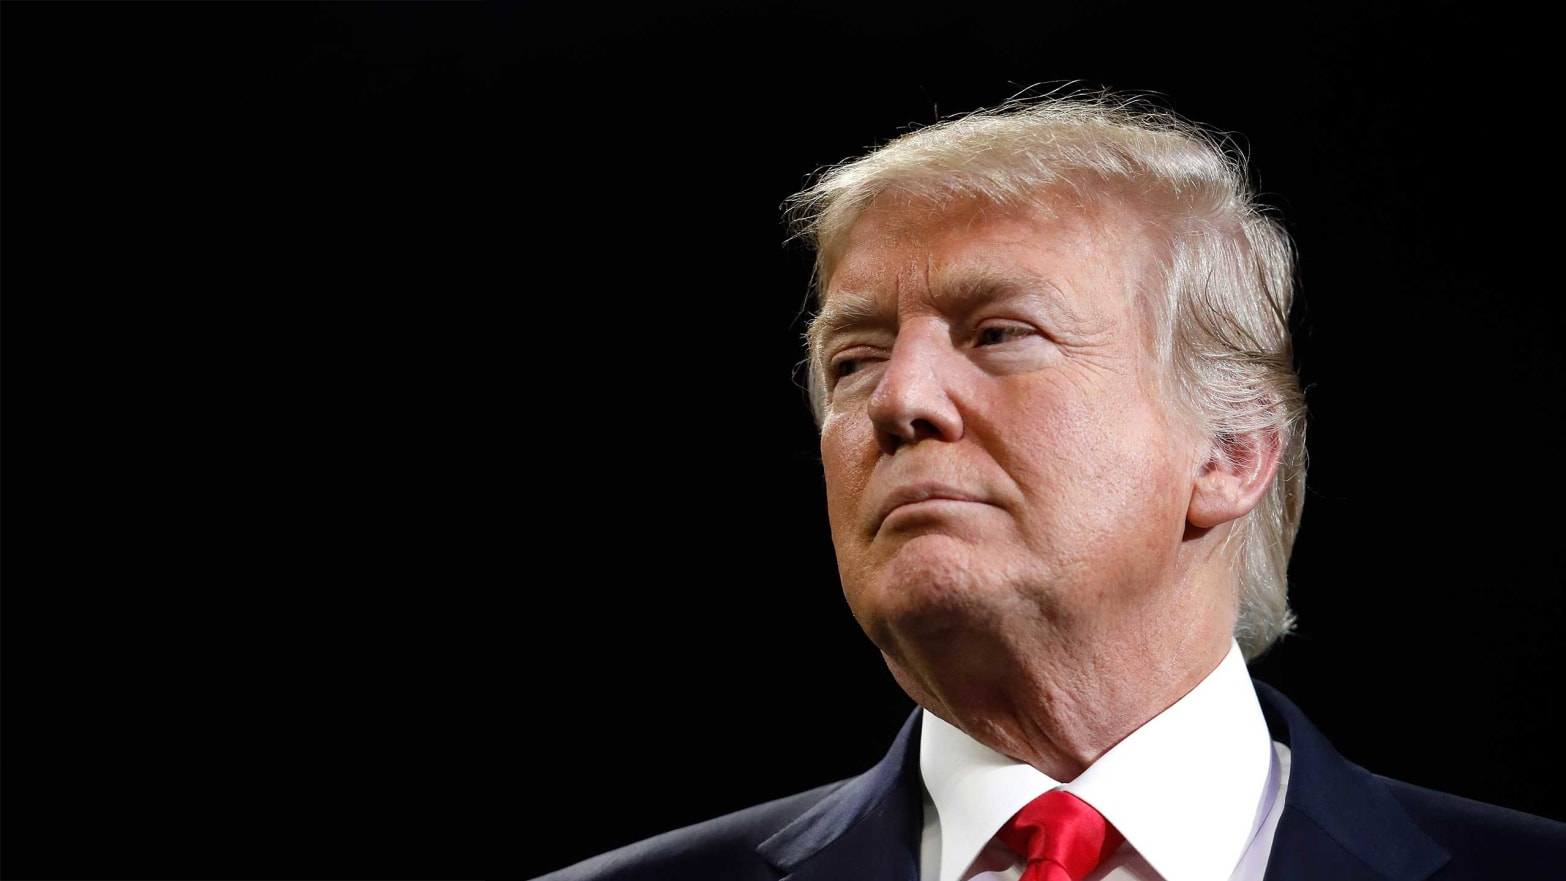 The Memo: Rough road awaits any Trump rival in GOP primary